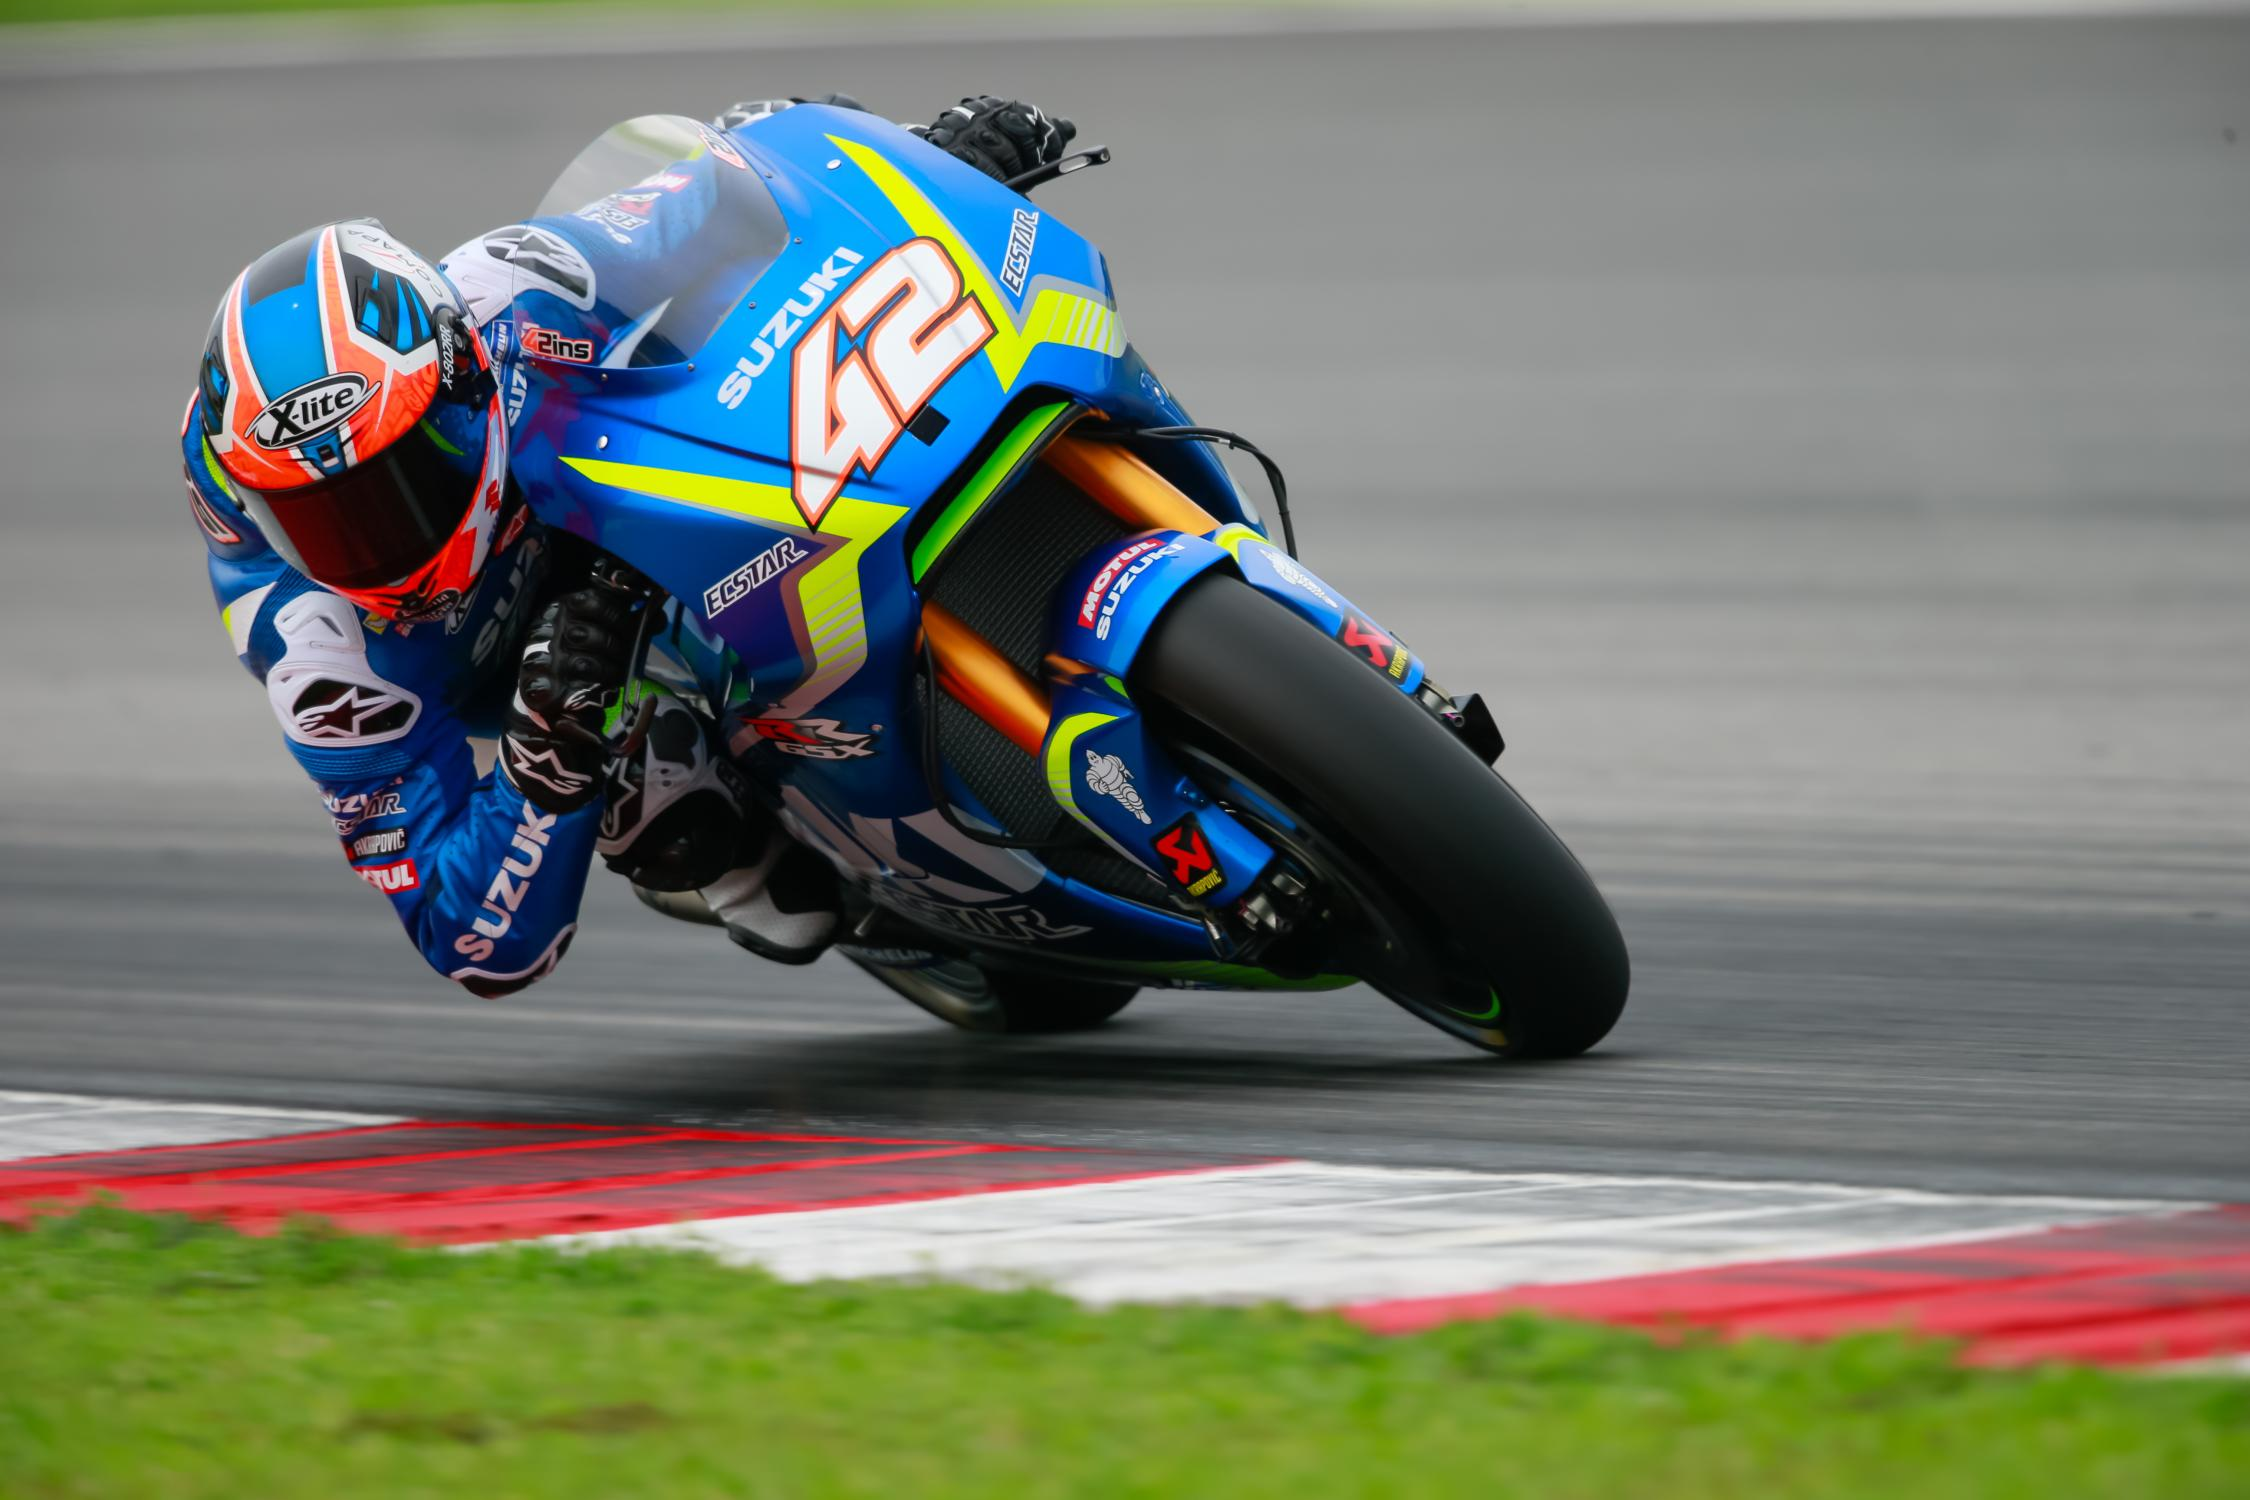 [MotoGP] Test Sepang 42-alex-rins-esp_gp_0310.gallery_full_top_fullscreen